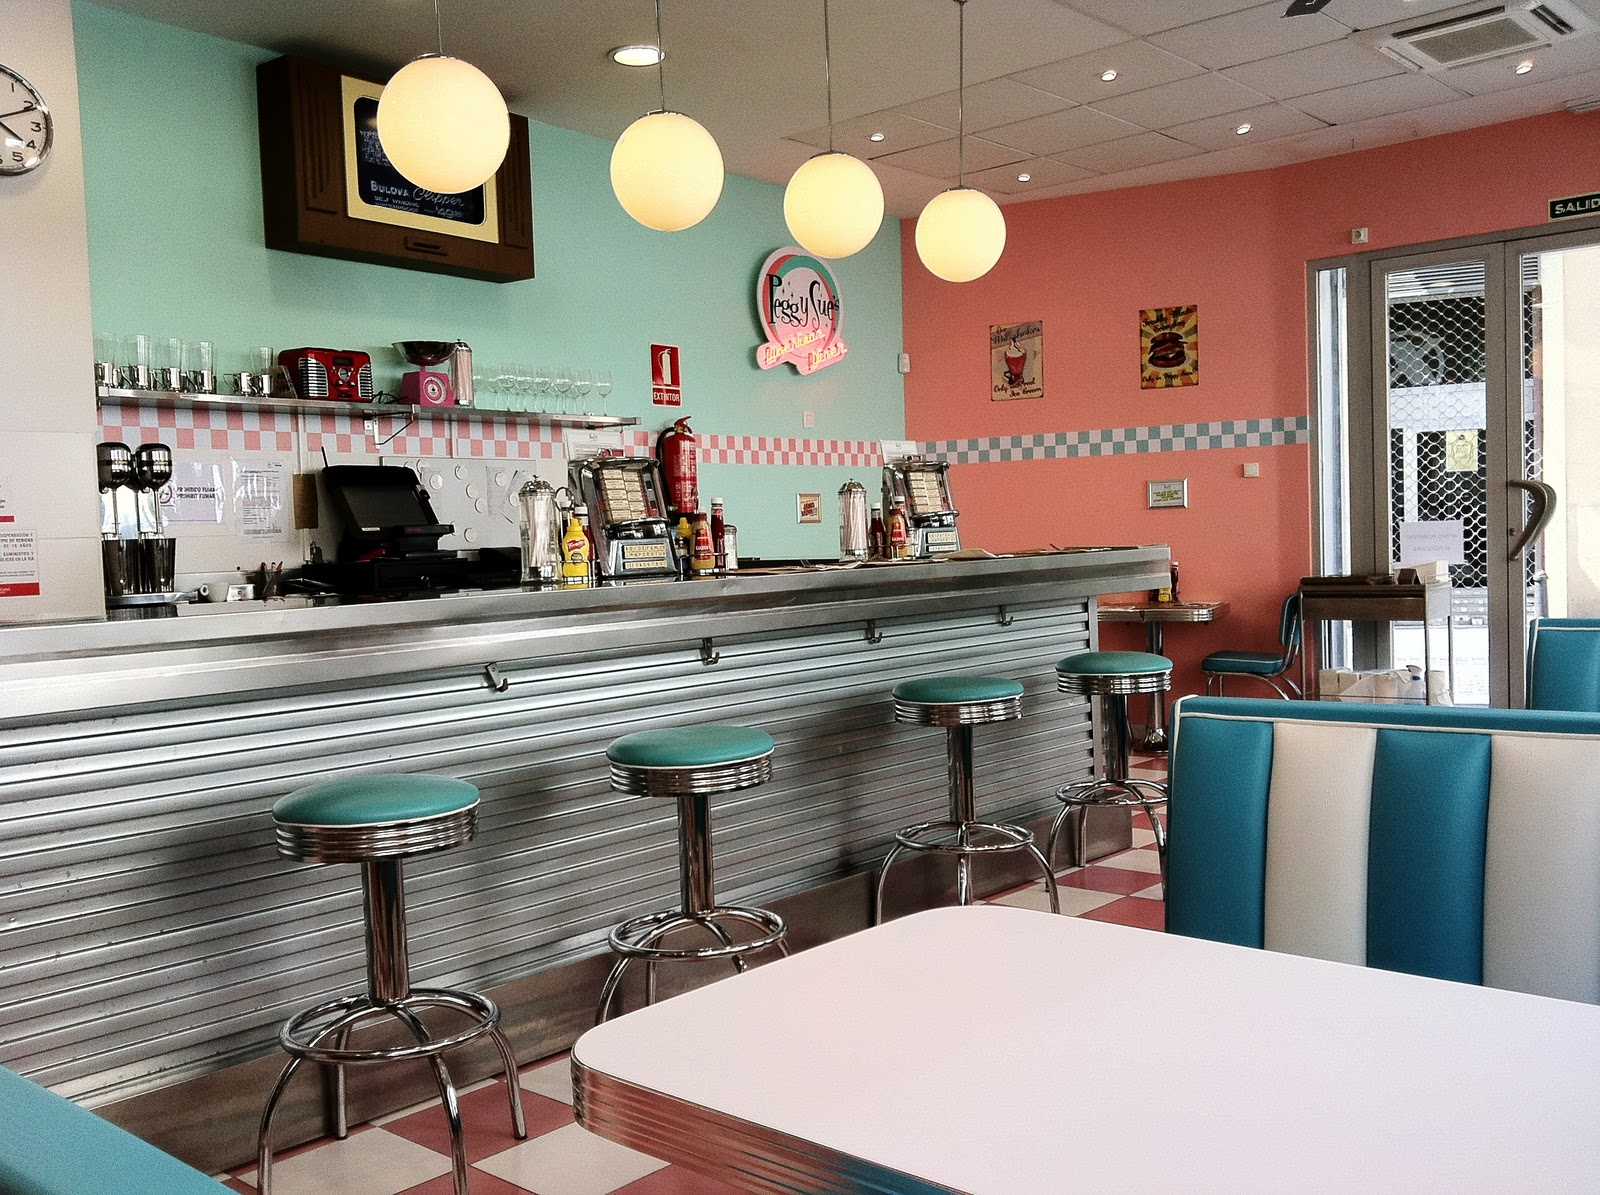 50 39 s american diner on pinterest diners 50s diner and retro for 50s diner style kitchen